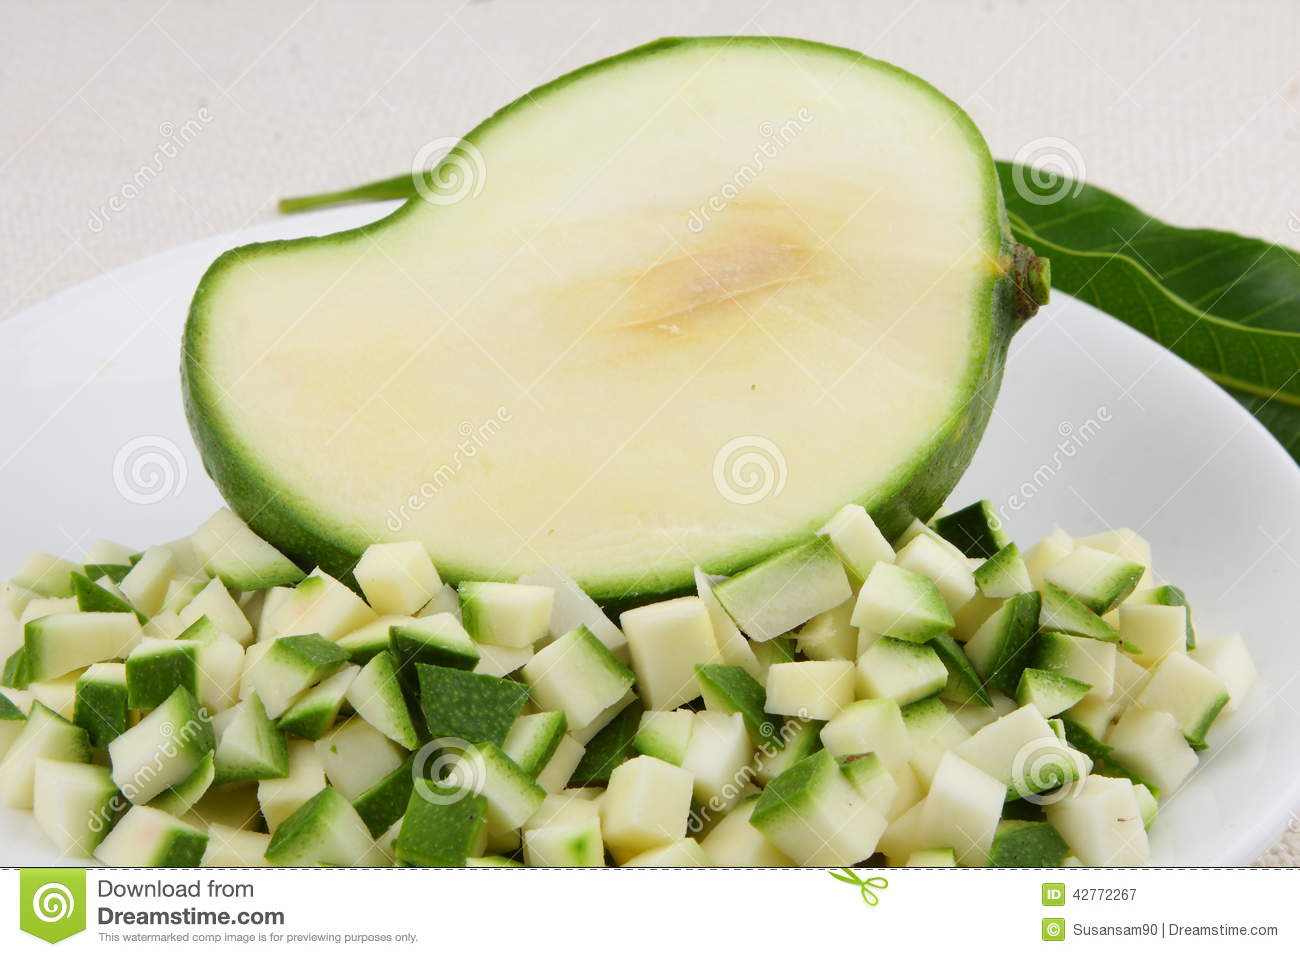 Green Mango Small Slices Stock Photo - Image: 42772267